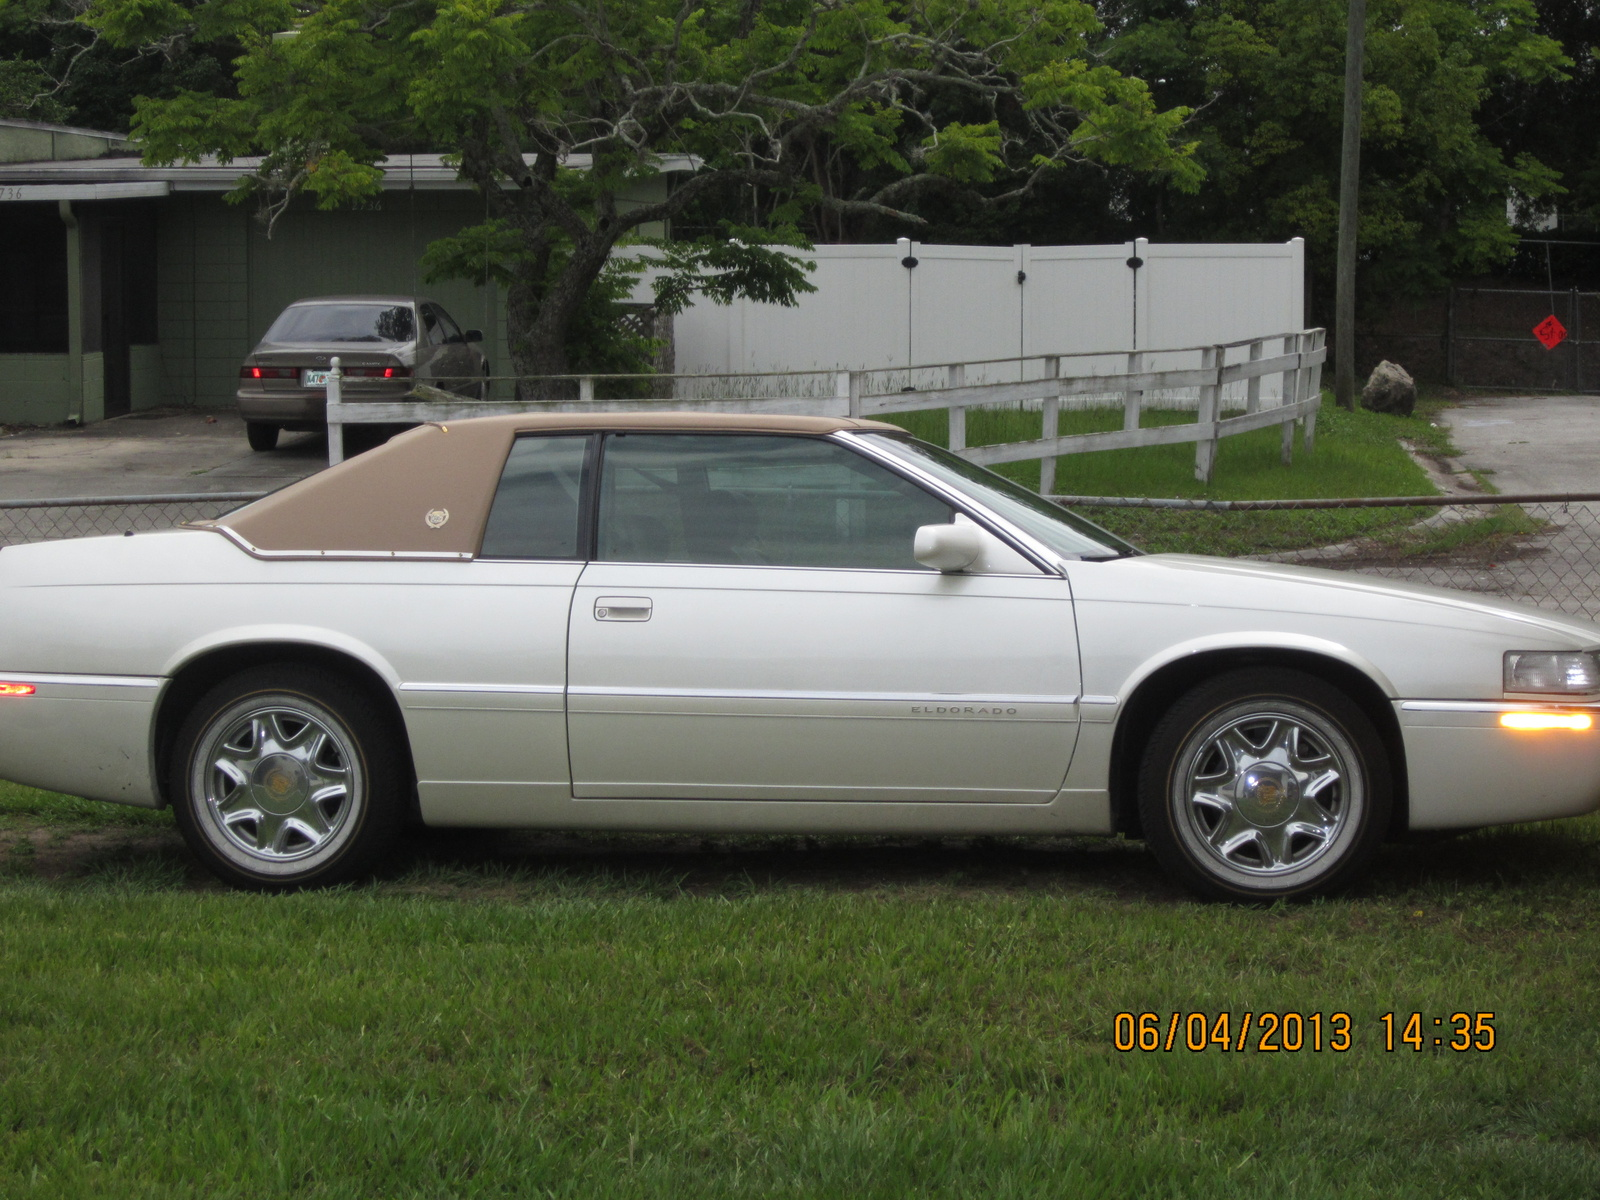 2001 Cadillac Deville Pictures C1484 pi36080069 in addition 2005 Cadillac Cts Alternator Diagram as well 2000 Cadillac DeVille Pictures C1488 pi18201315 likewise 2006 Cadillac SRX Pictures C1454 also 1997 Cadillac Eldorado Pictures C1503. on cadillac xlr problems